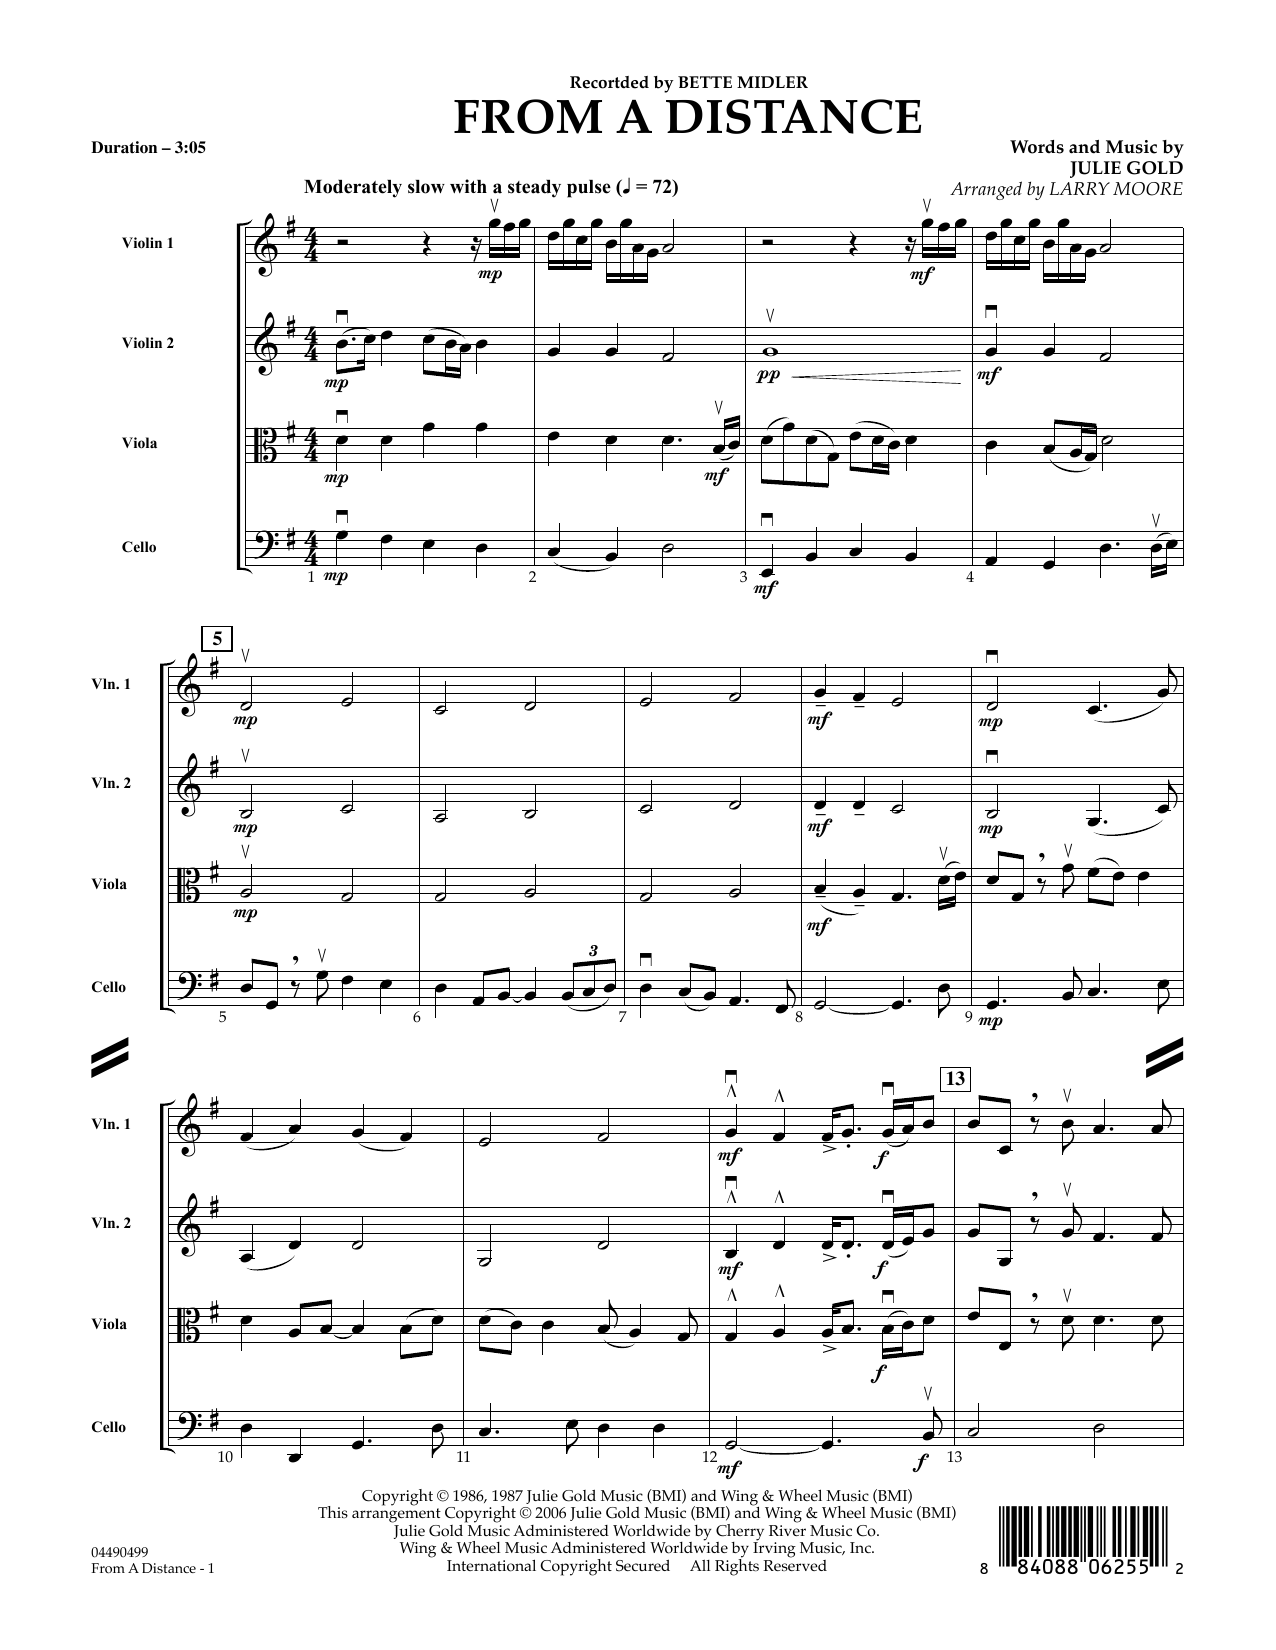 Download Julie Gold 'From a Distance (arr. Larry Moore) - Full Score' Digital Sheet Music Notes & Chords and start playing in minutes